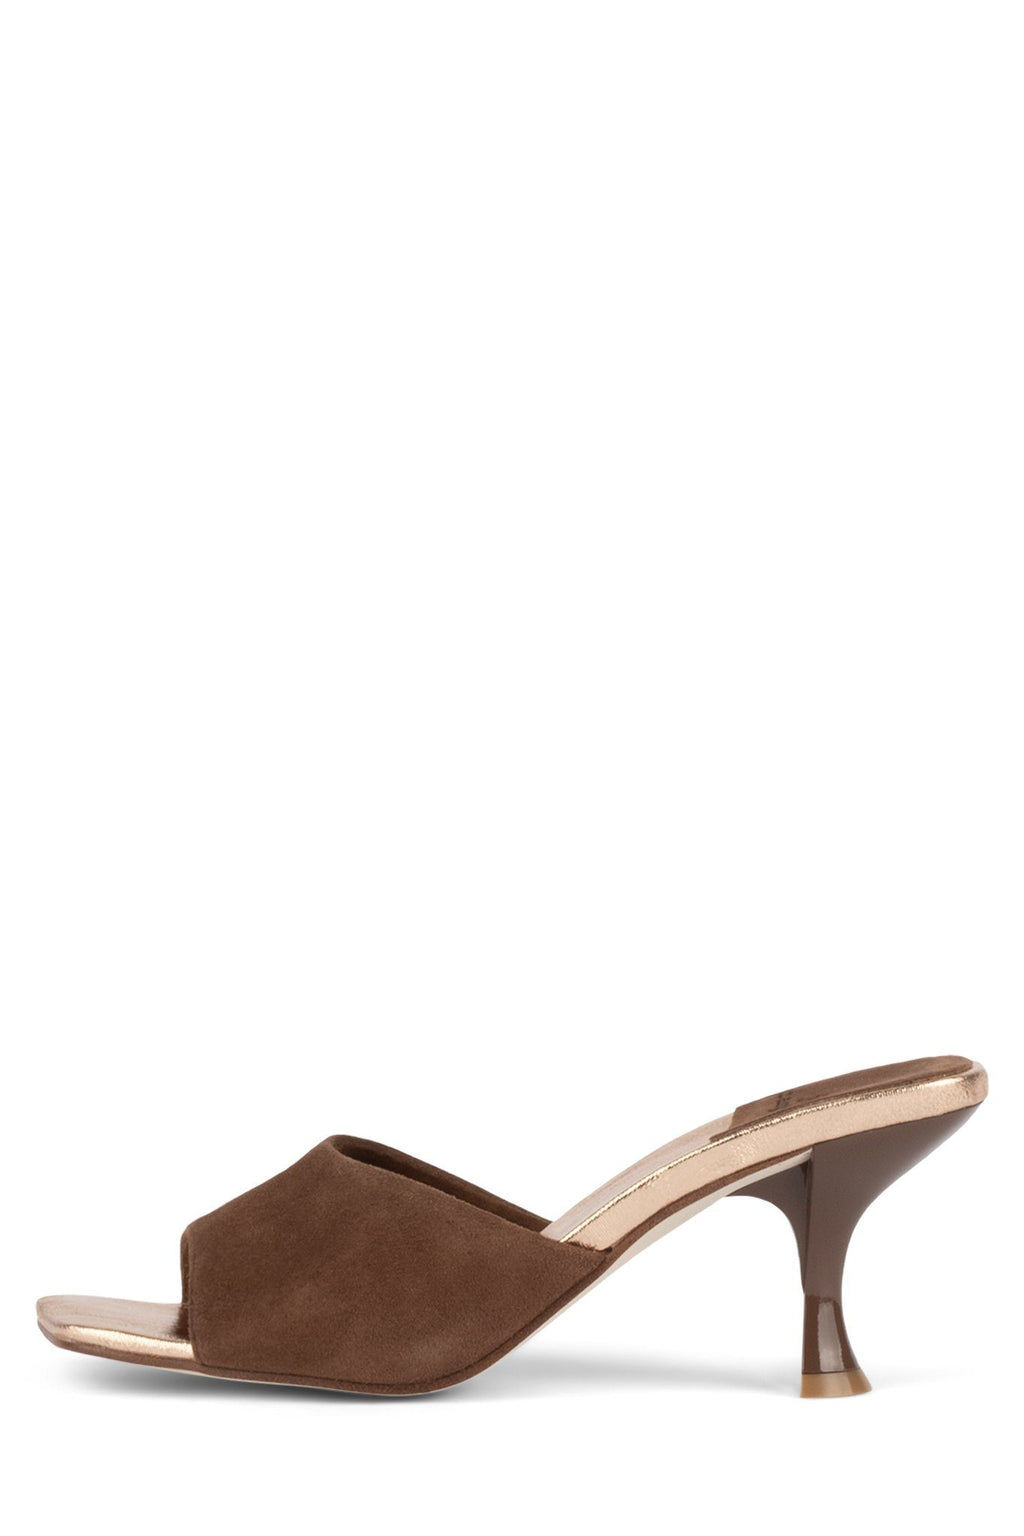 MR-BIG Heeled Sandal YYH Brown Suede Bronze 6